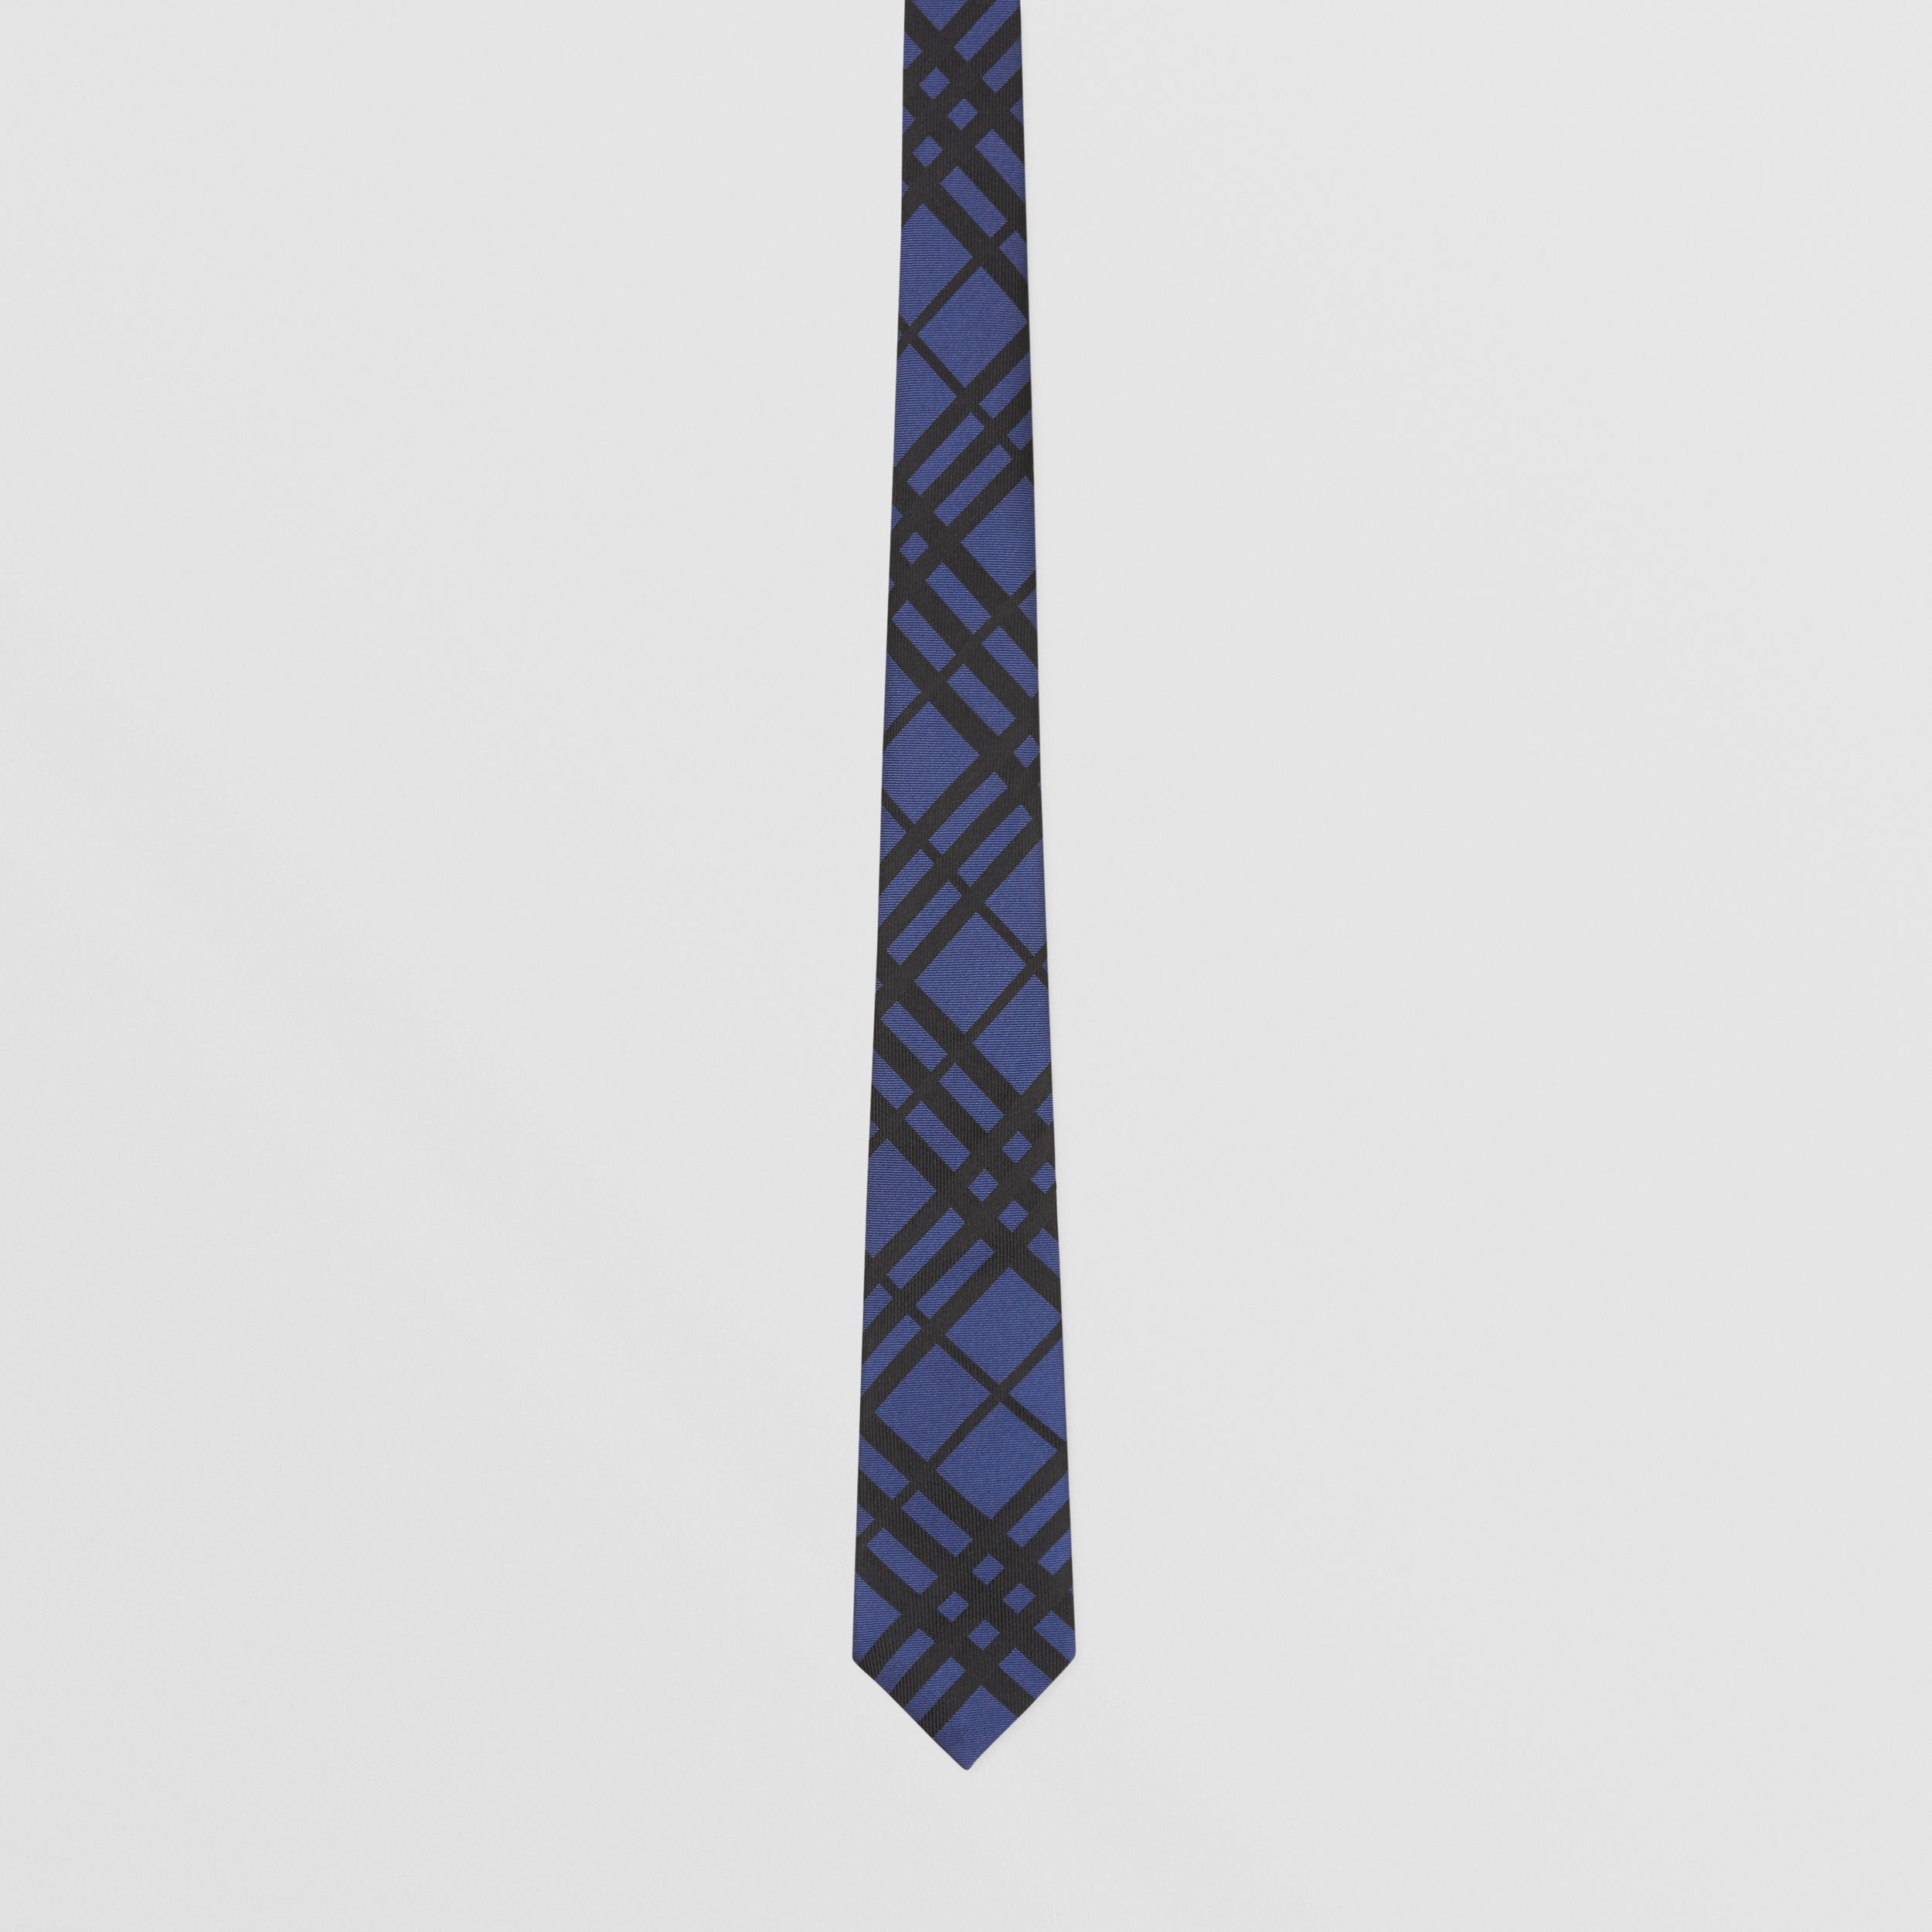 Classic Cut Check Silk Jacquard Tie in Canvas Blue - Men | Burberry - 4